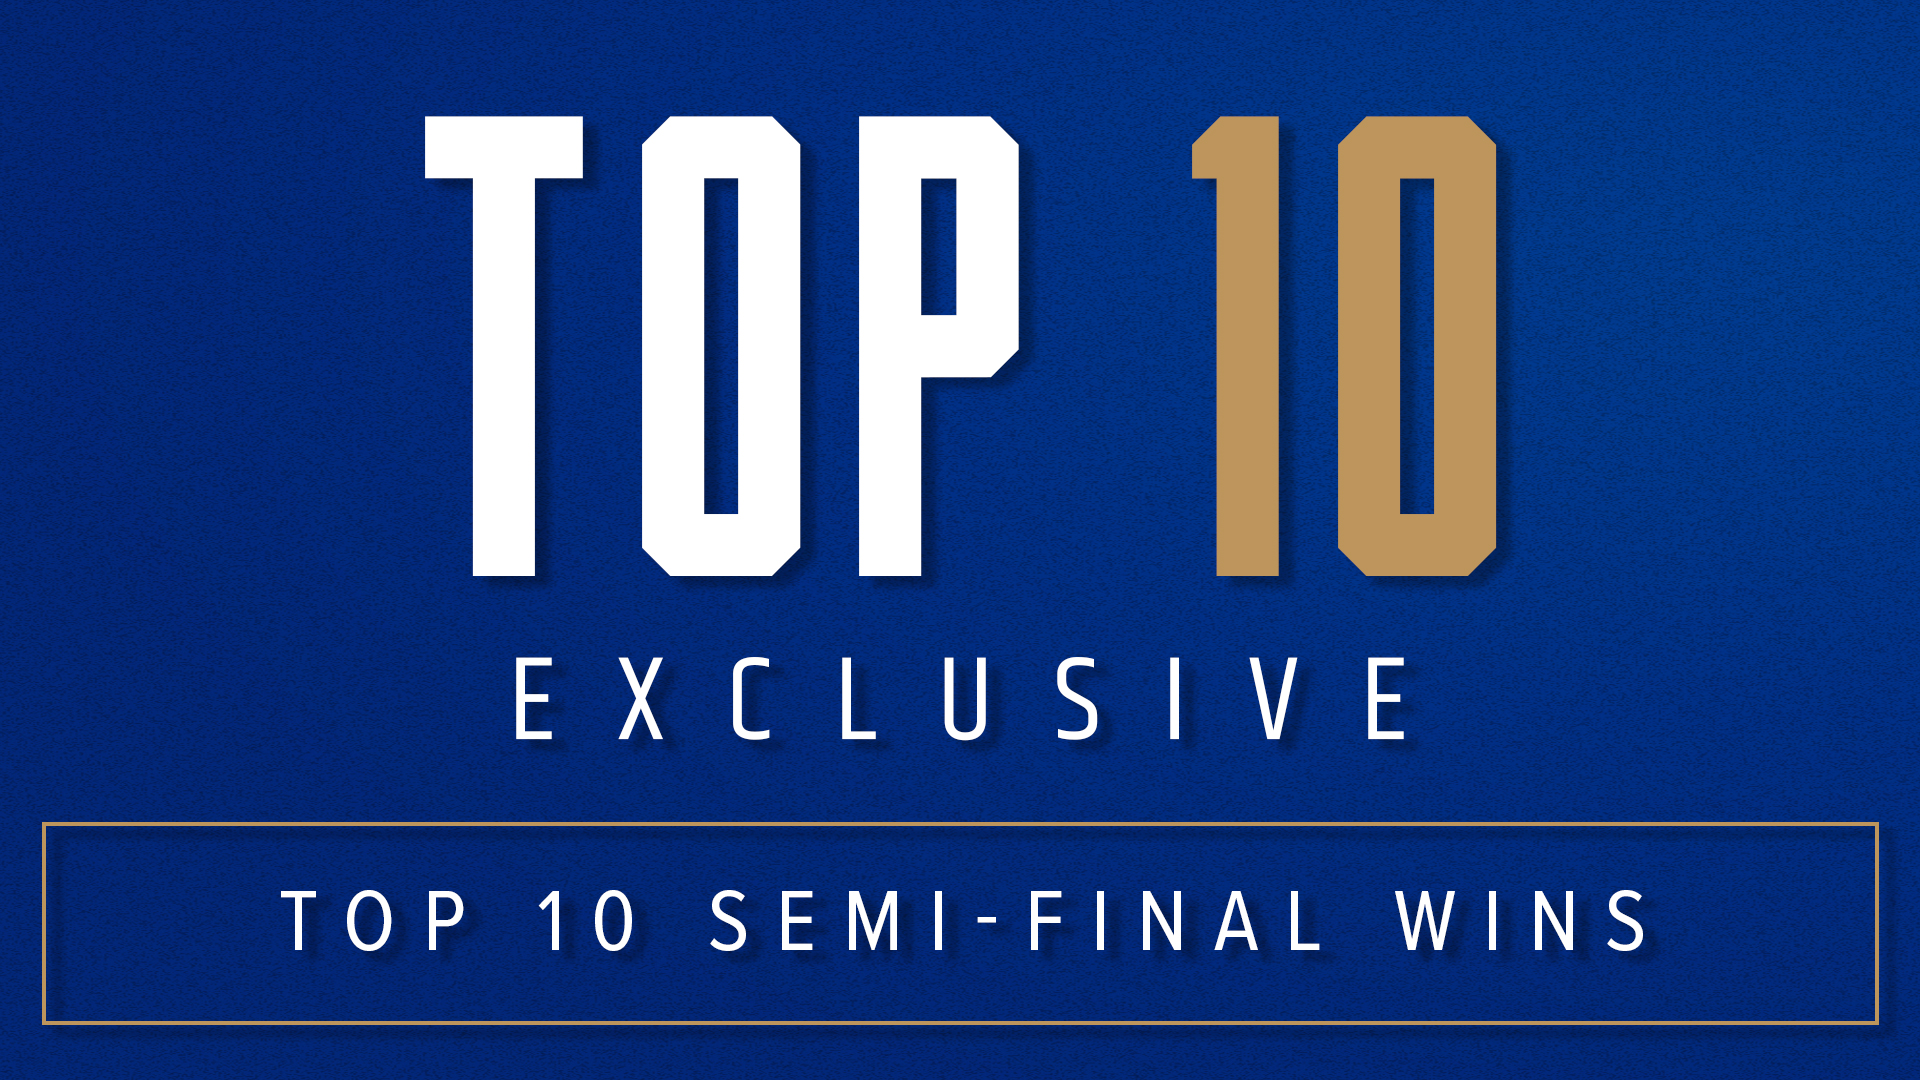 Top 10 Semi-Final Wins